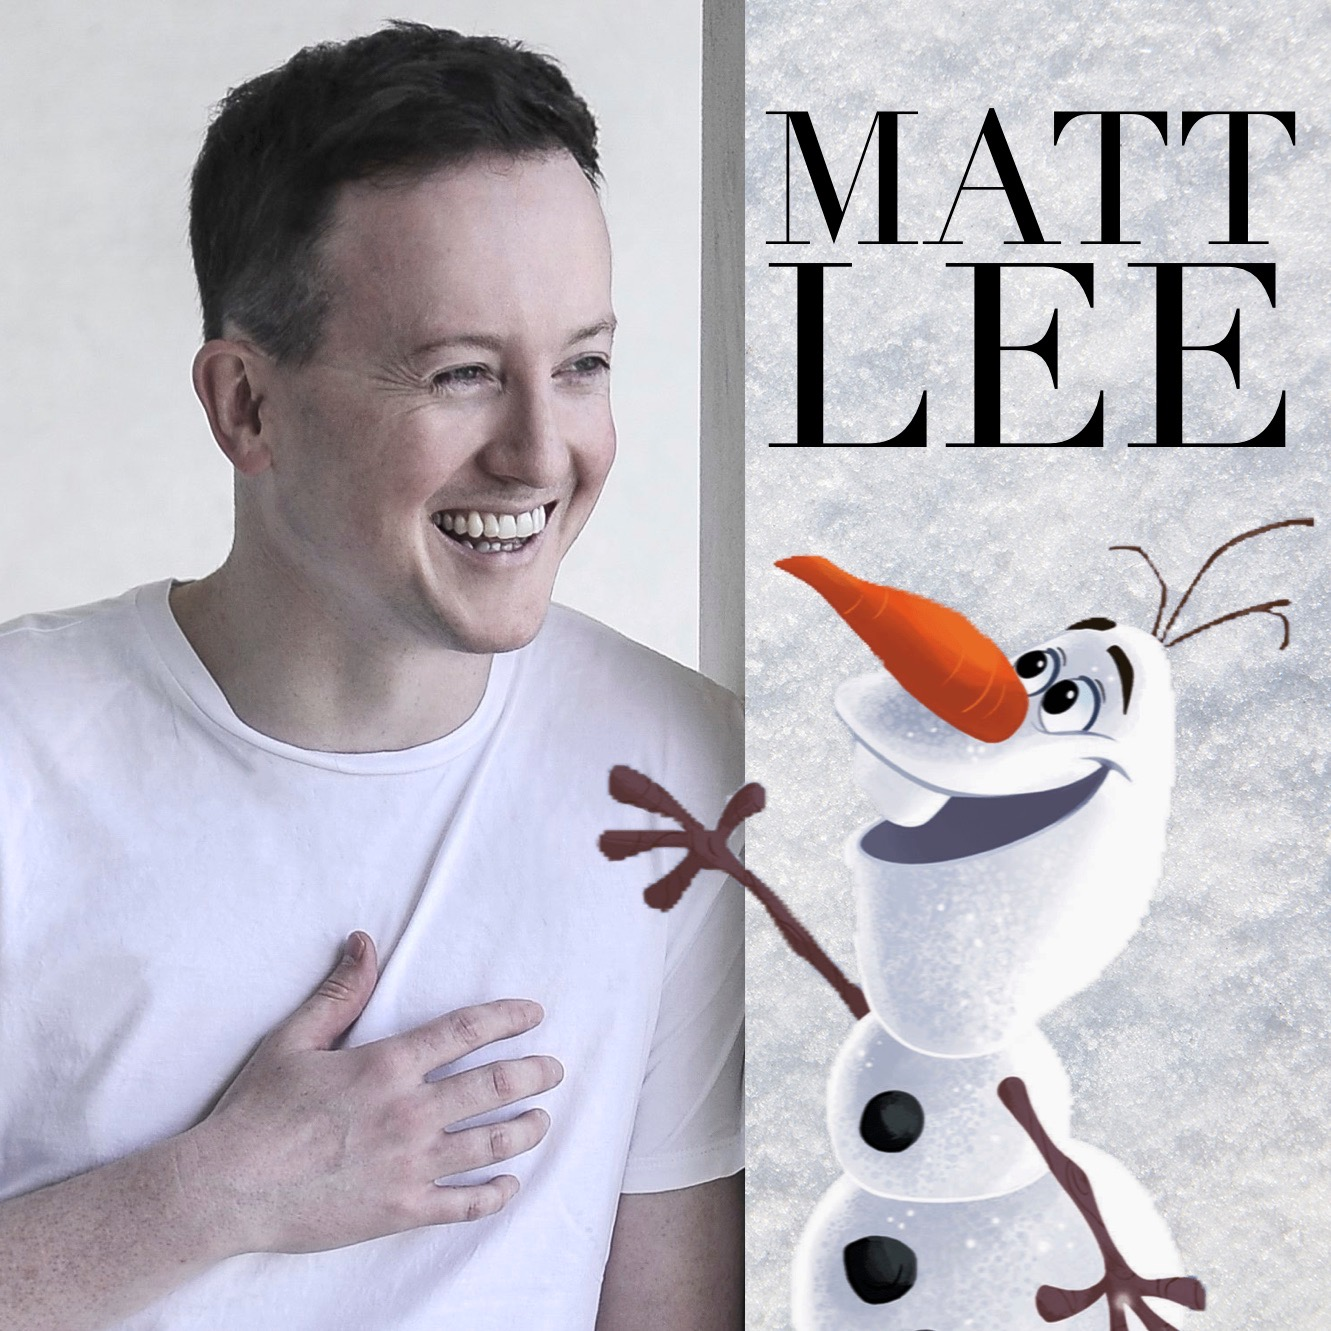 Matt will appear as OLAF in Disney's Australian production of  FROZEN in 2020 and beyond